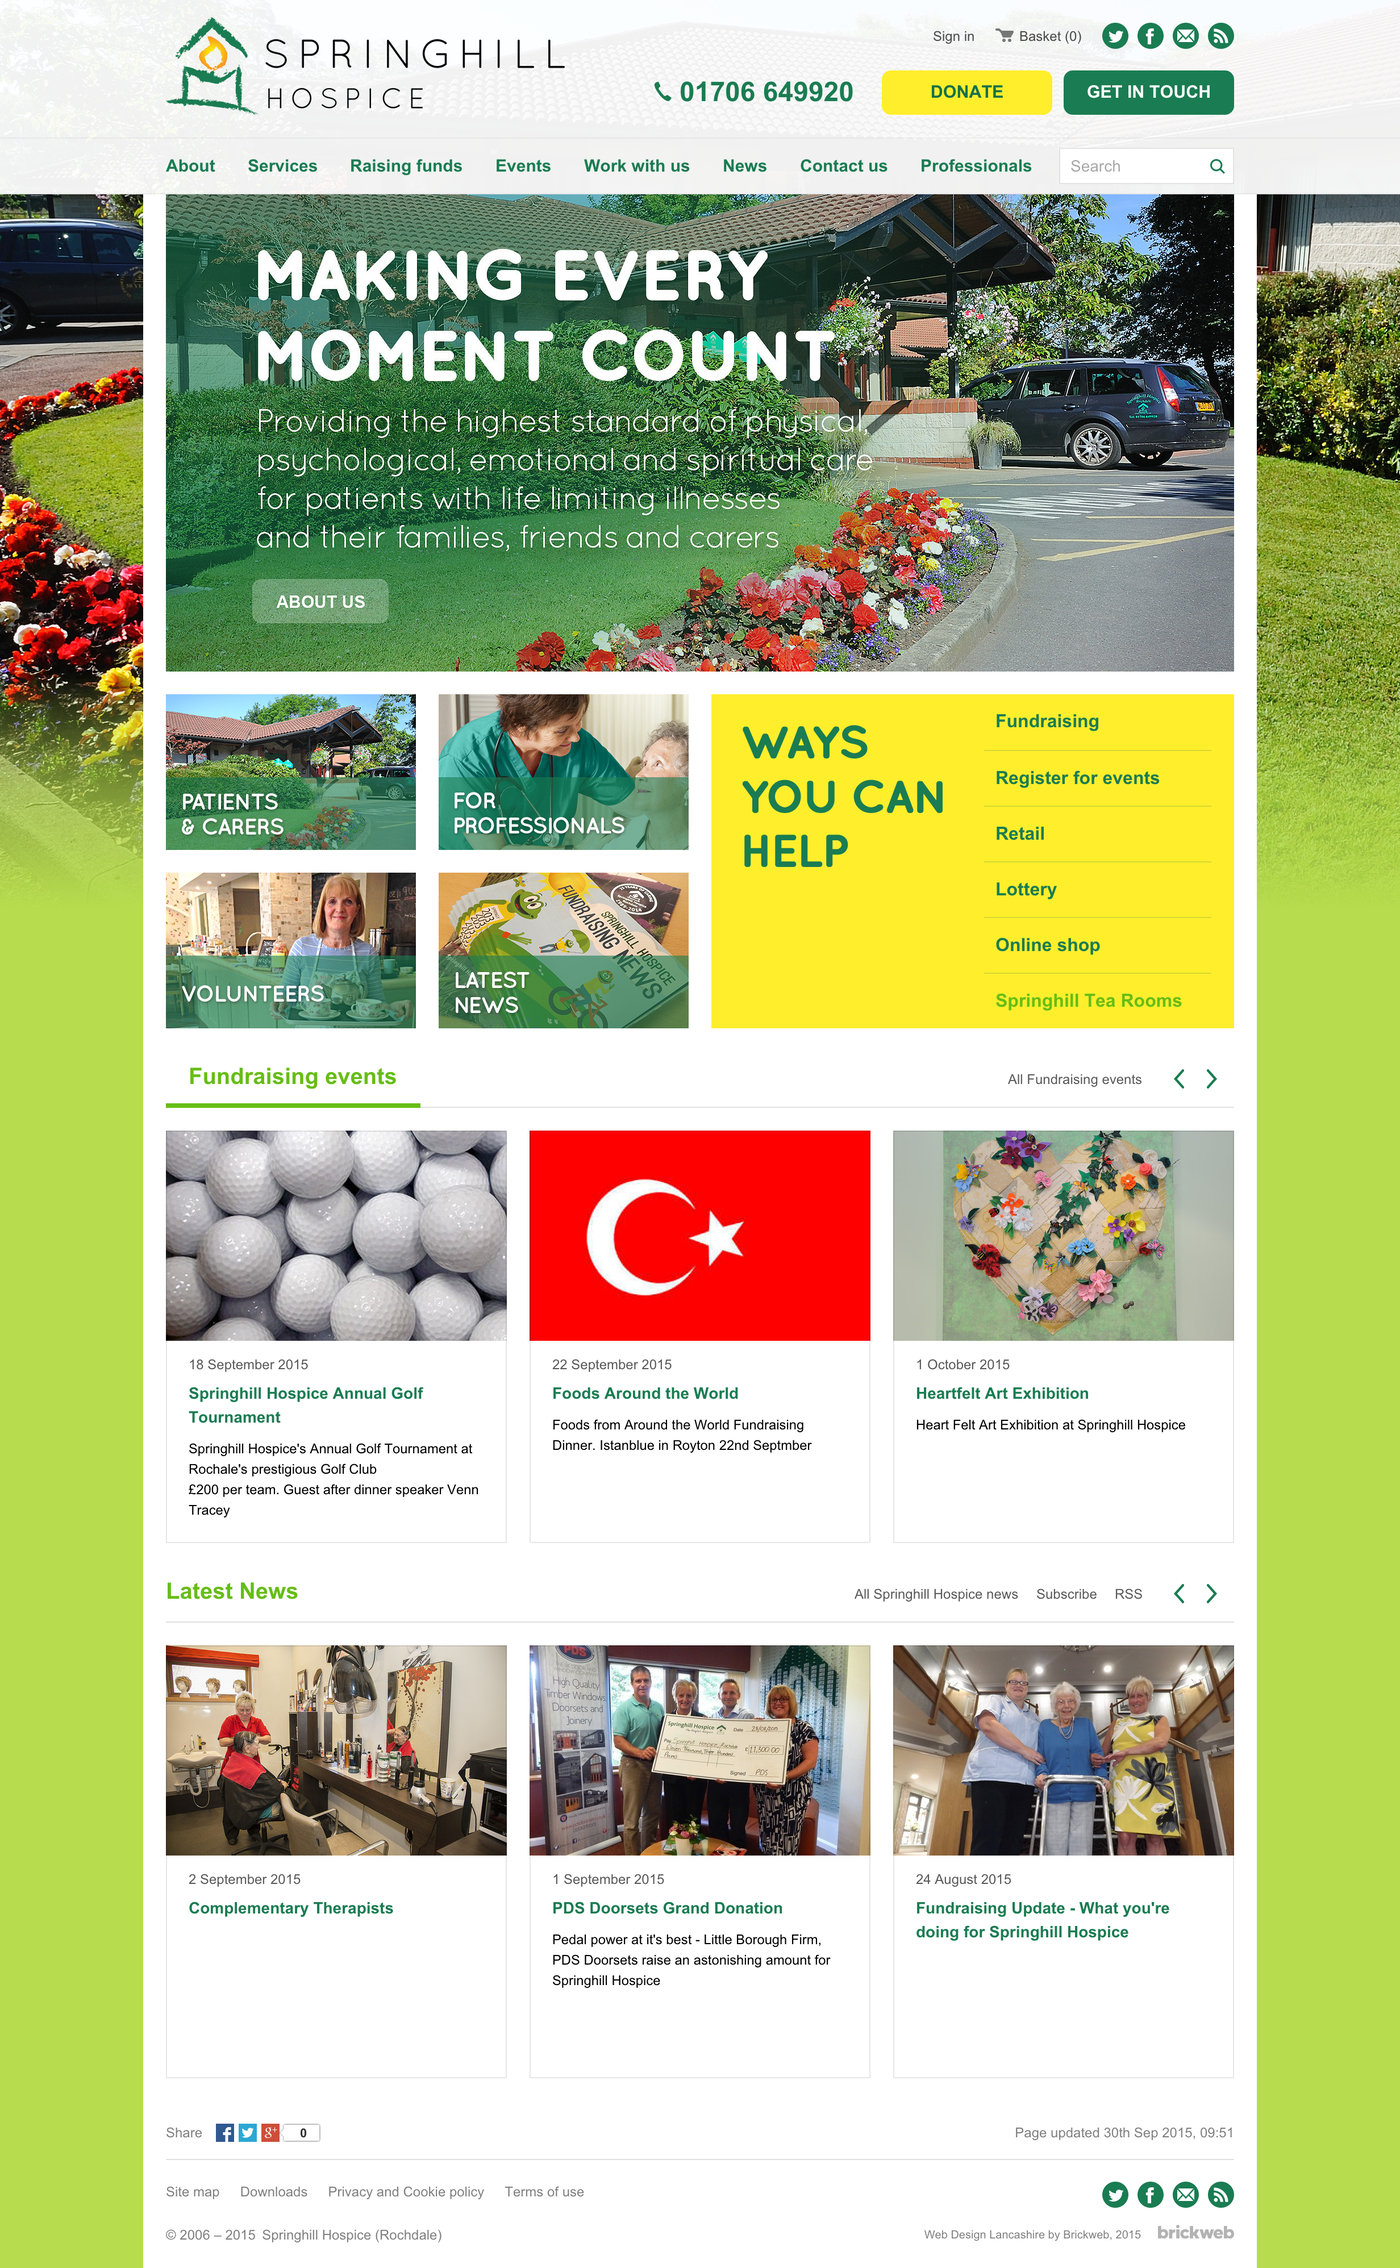 Springhill Hospice Home page